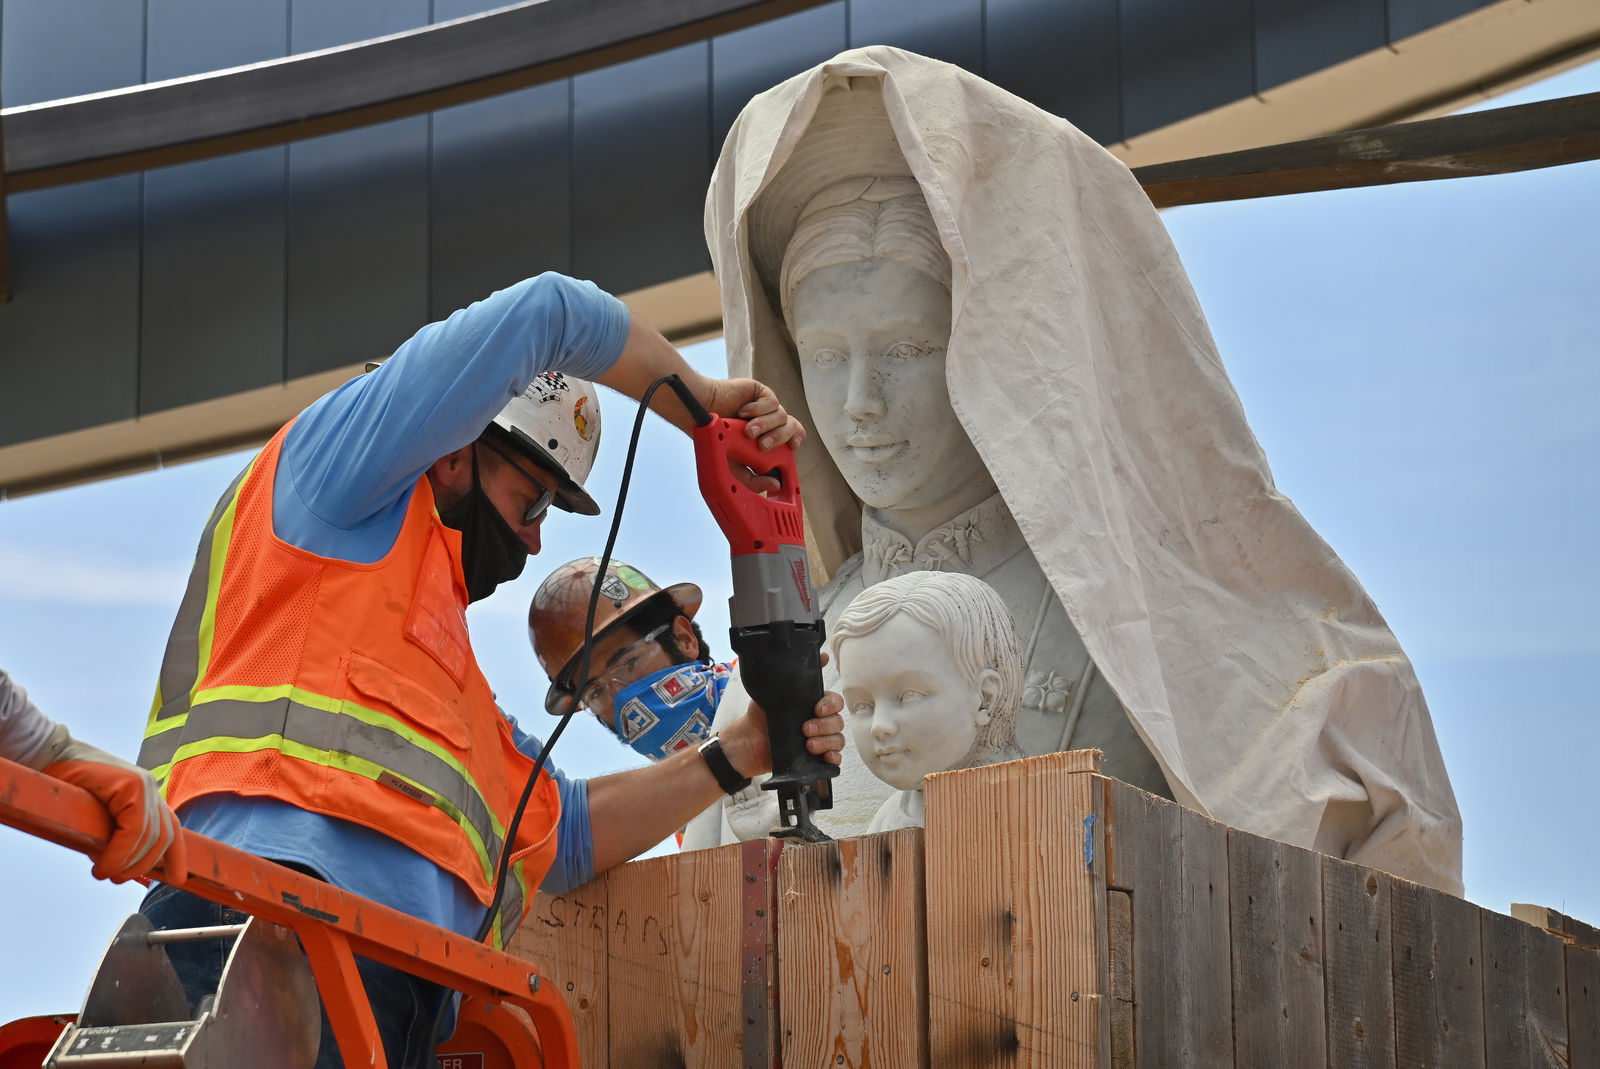 A statue of Mary and baby Jesus is unboxed and prepared for installation in Christ Cathedral's new Catholic Vietnamese memorial being built on the campus. Photo courtesy Diocese of Orange. Note: Photo taken during construction.